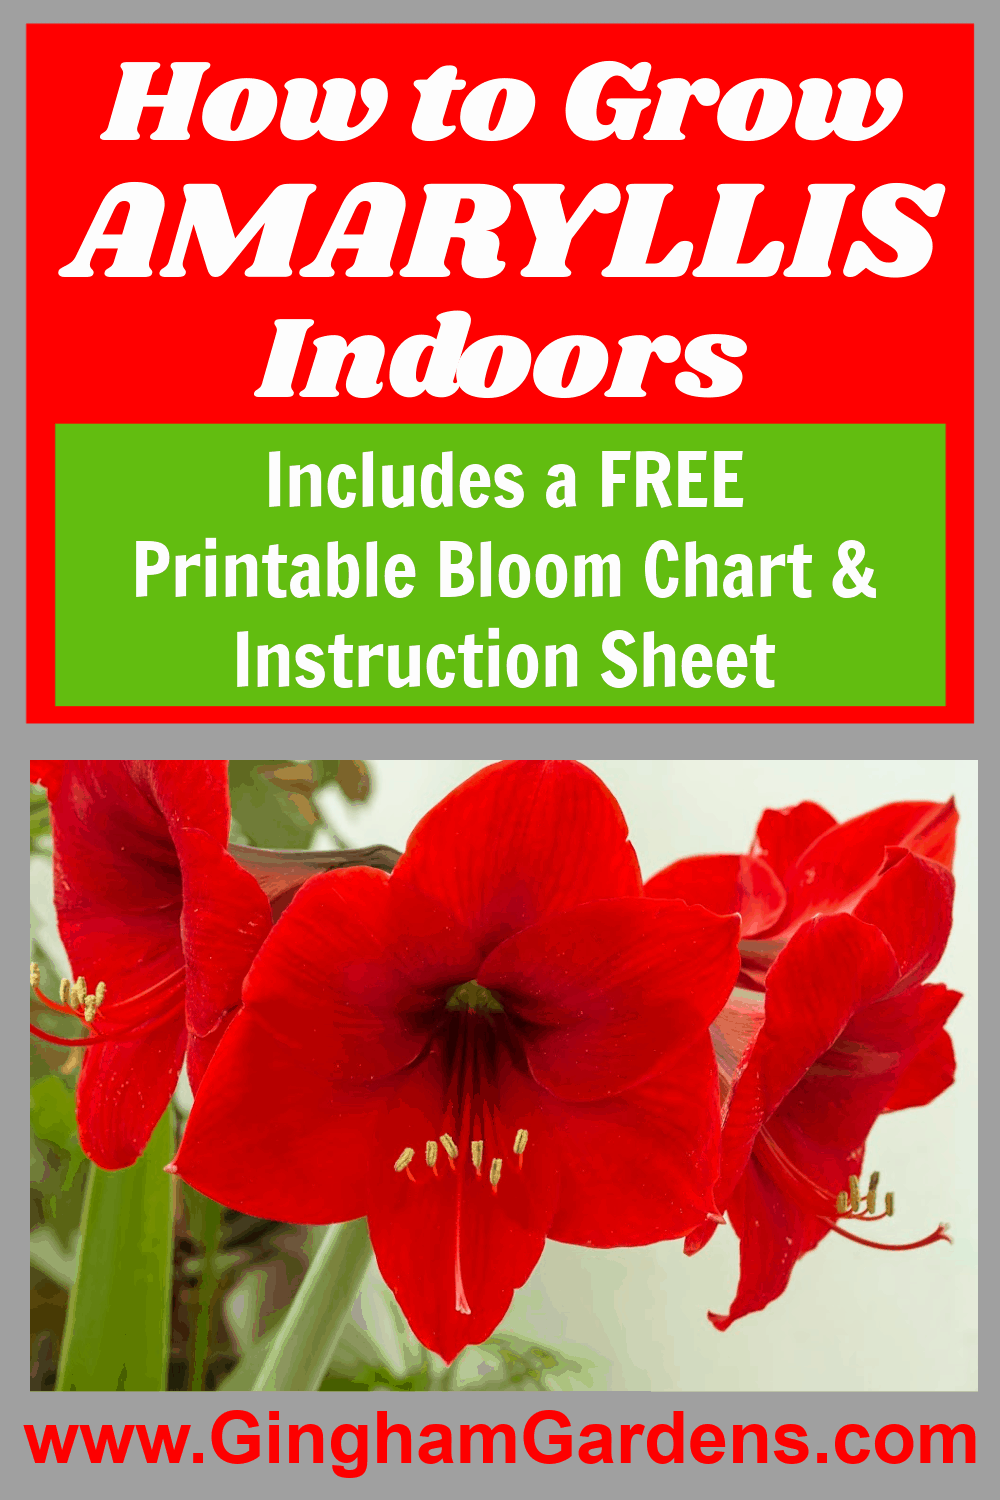 Image of a red amaryllis with text overlay - How to grow amaryllis indoors.